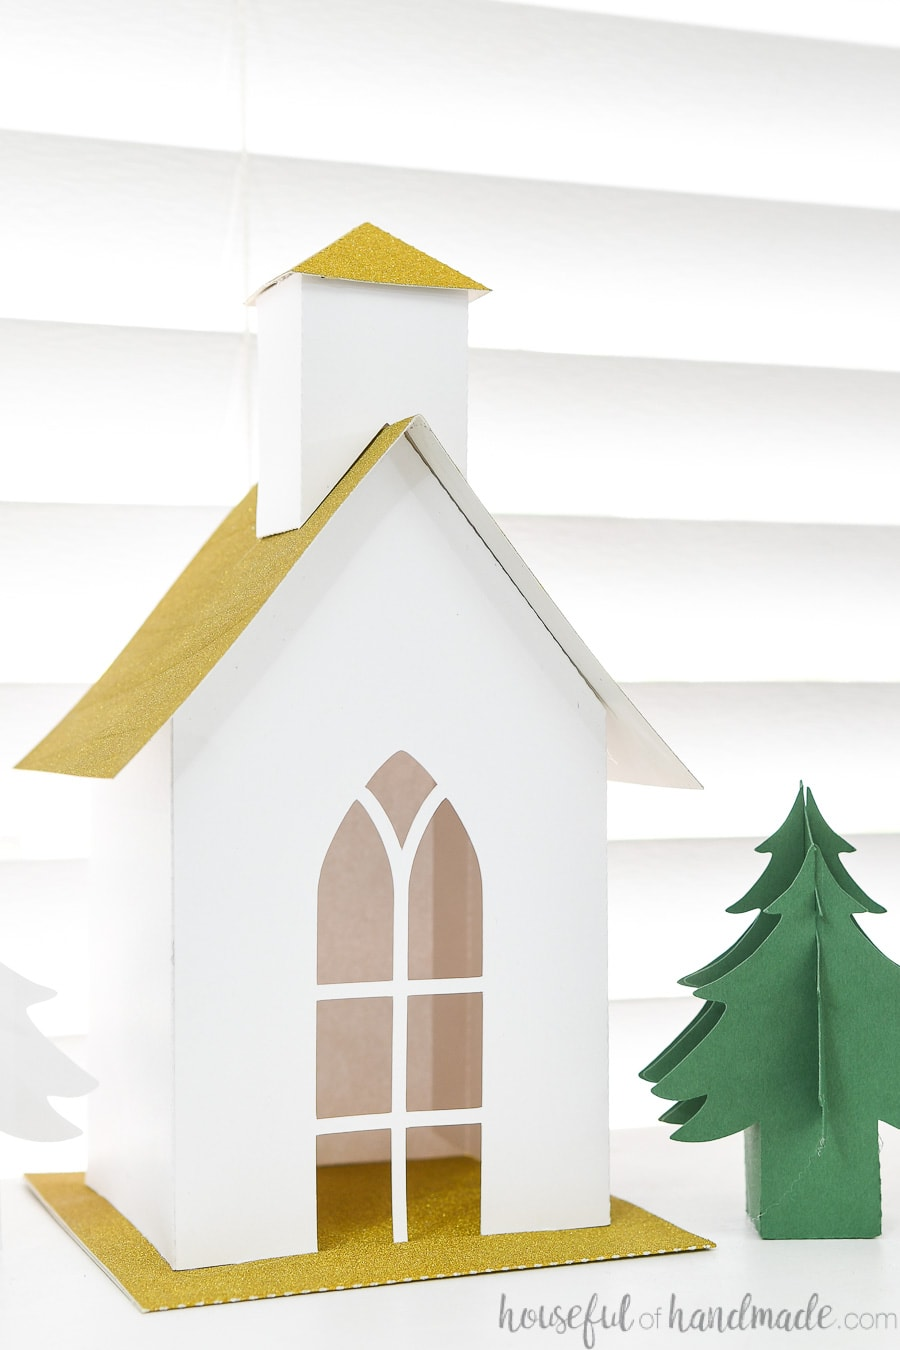 Close up of the paper Christmas church made with white cardstock and gold glitter roof and base next to a green paper Christmas tree.